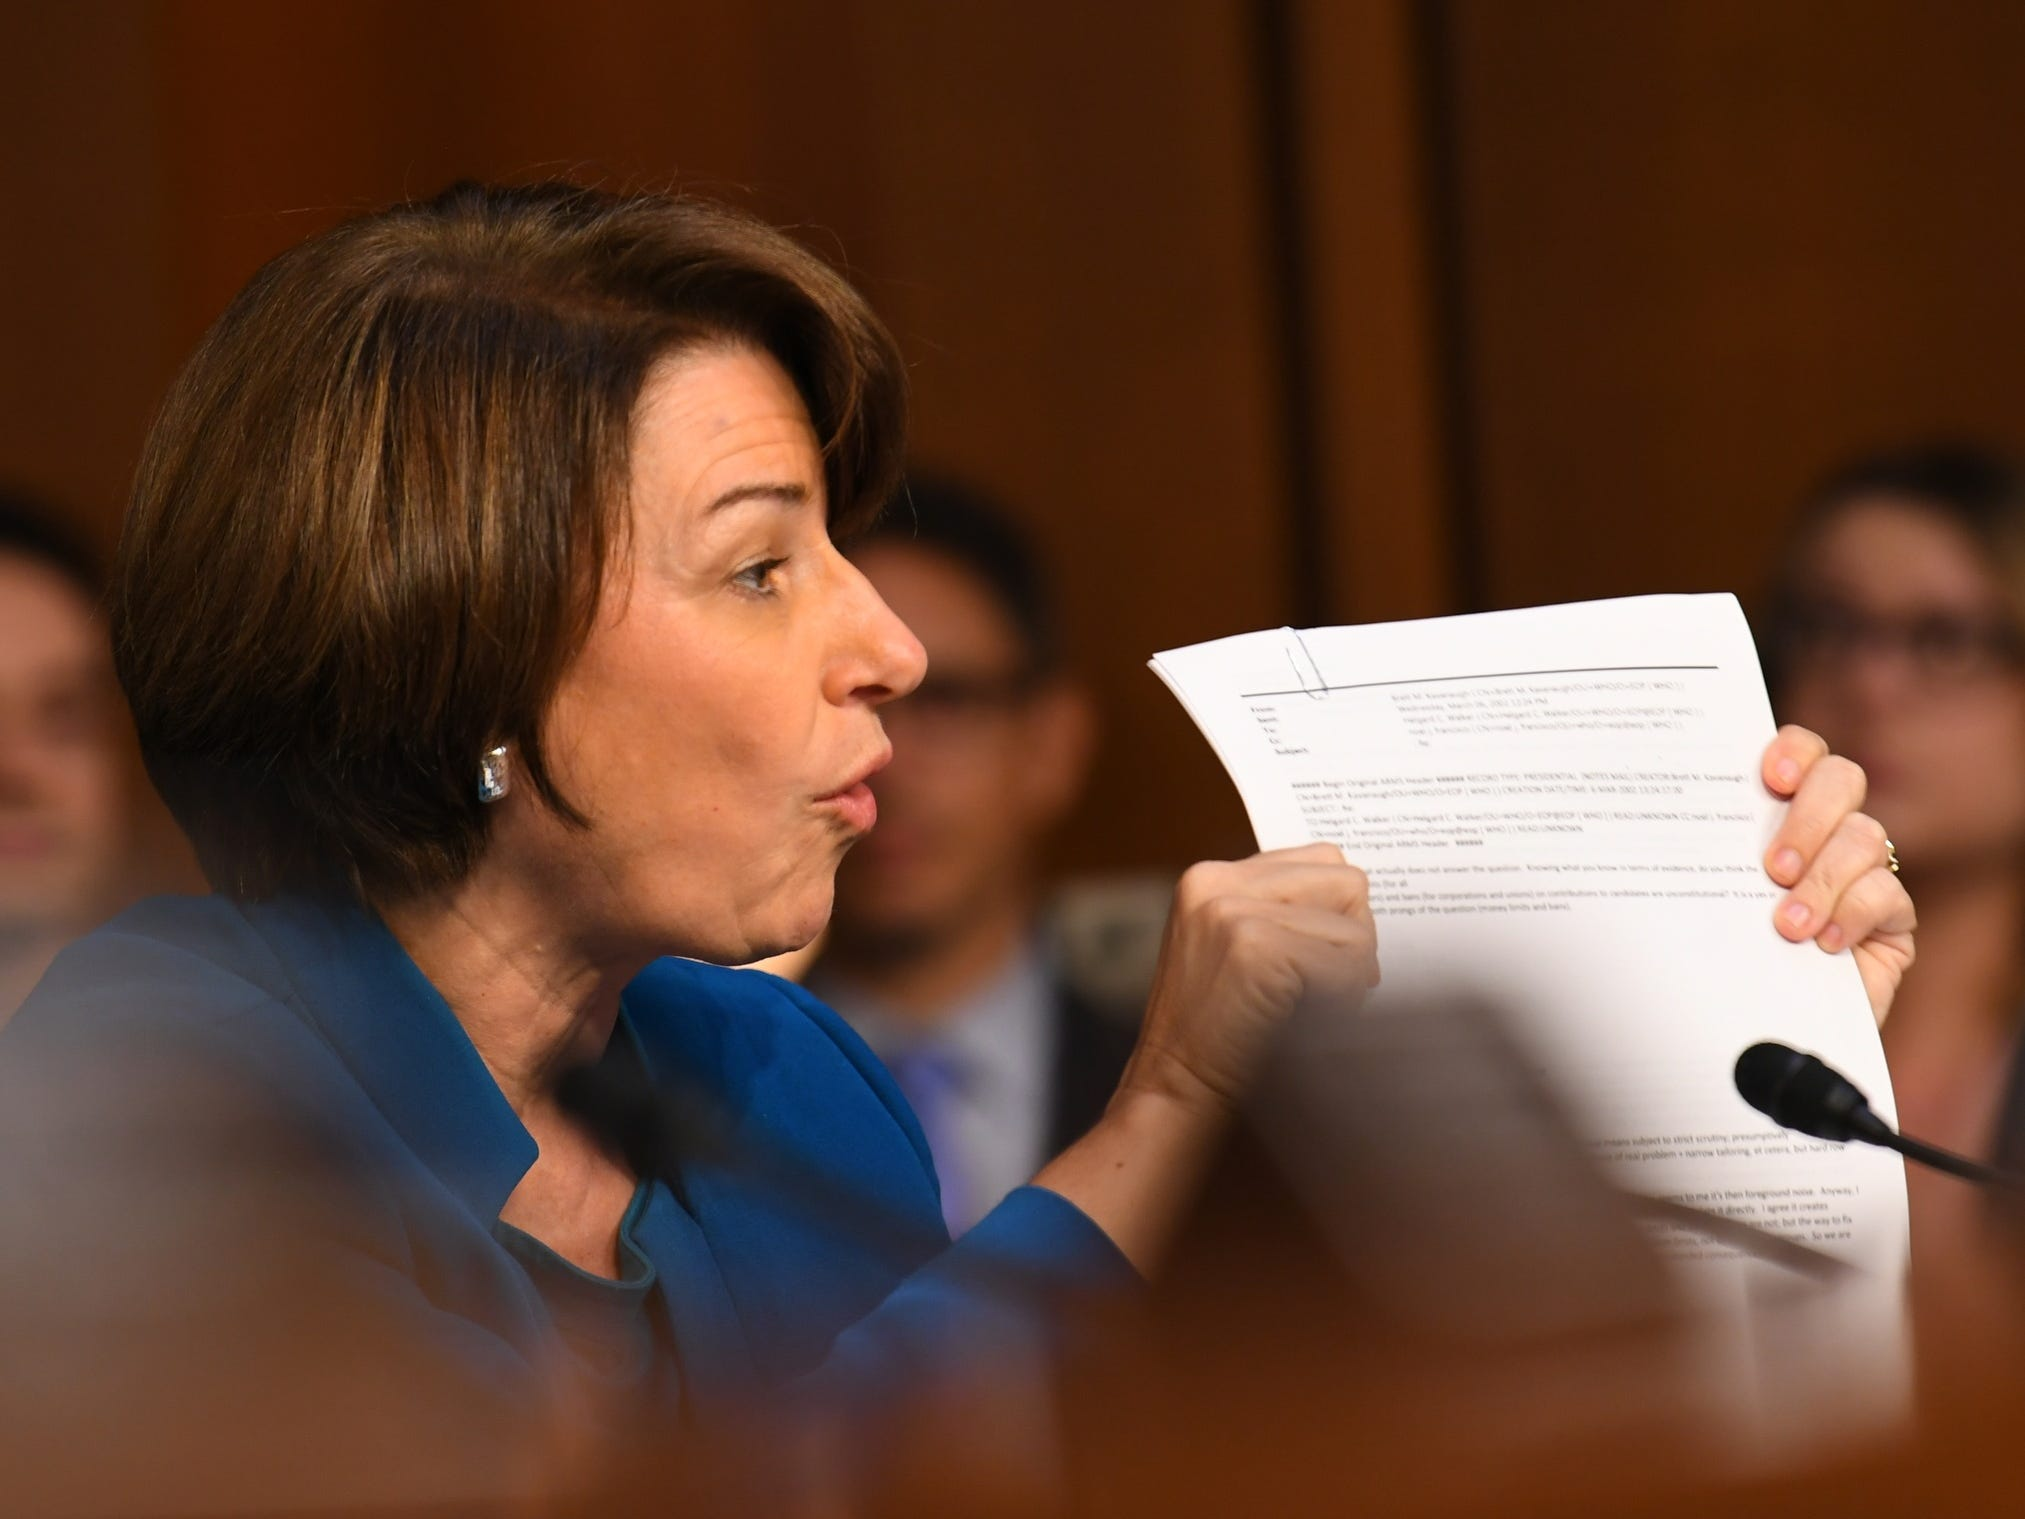 9/4/18 10:27:46 AM -- Washington, DC, U.S.A  -- Amy Klobuchar (D-Minn.) speaks during the hearing for Supreme Court Associate Justice nominee Brett Kavanaugh on Sept. 4, 2018 in Washington. Kavanaugh was nominated by President Donald Trump to replace Justice Anthony Kennedy, who retired from the Supreme Court in July.  --    Photo by Jack Gruber, USA TODAY Staff ORG XMIT:  JG 137433 Kavanaugh Confir 9/4/2018 (Via OlyDrop)